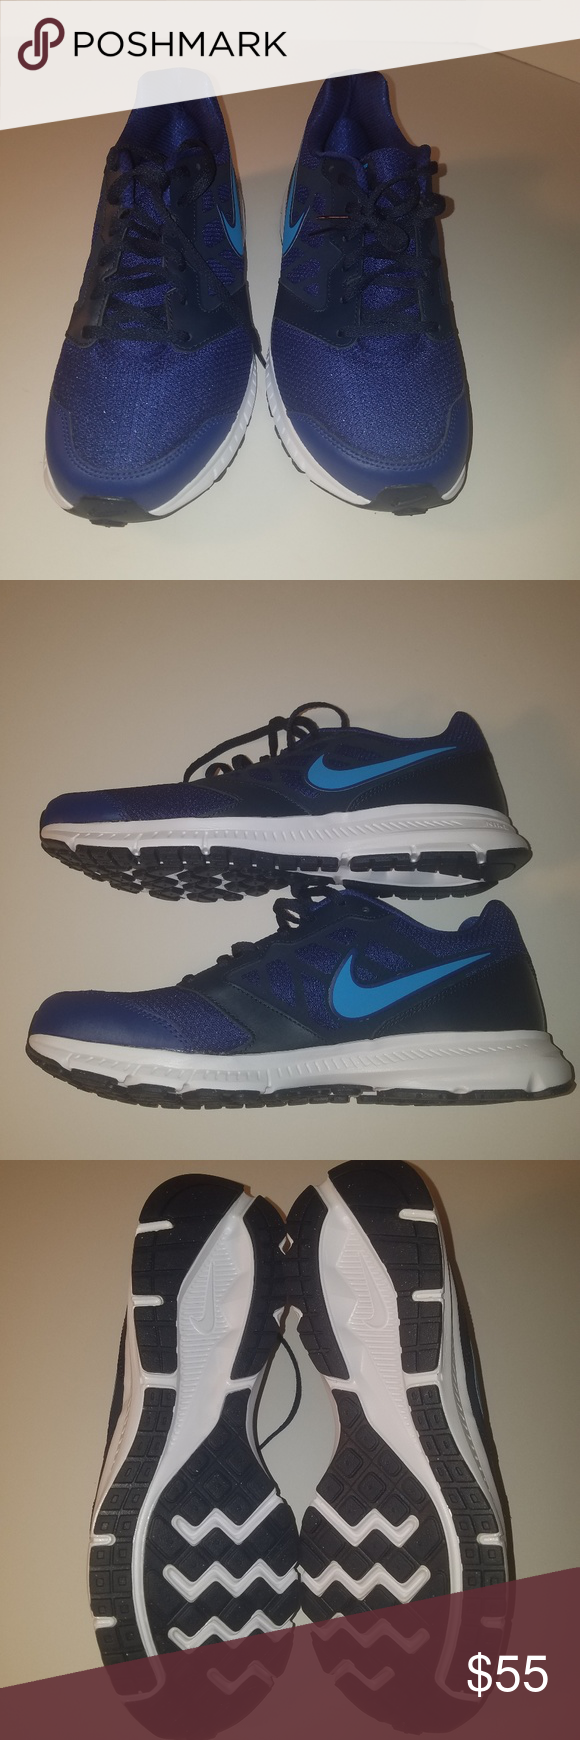 a222f9ac80bb5 Nike downshifter 6 running shoes men Nike Downshifter 6 Men s Running Shoes  Deep Royal Blue 684652 417 Size 11 NEW without box. . Nike Shoes Athletic  Shoes